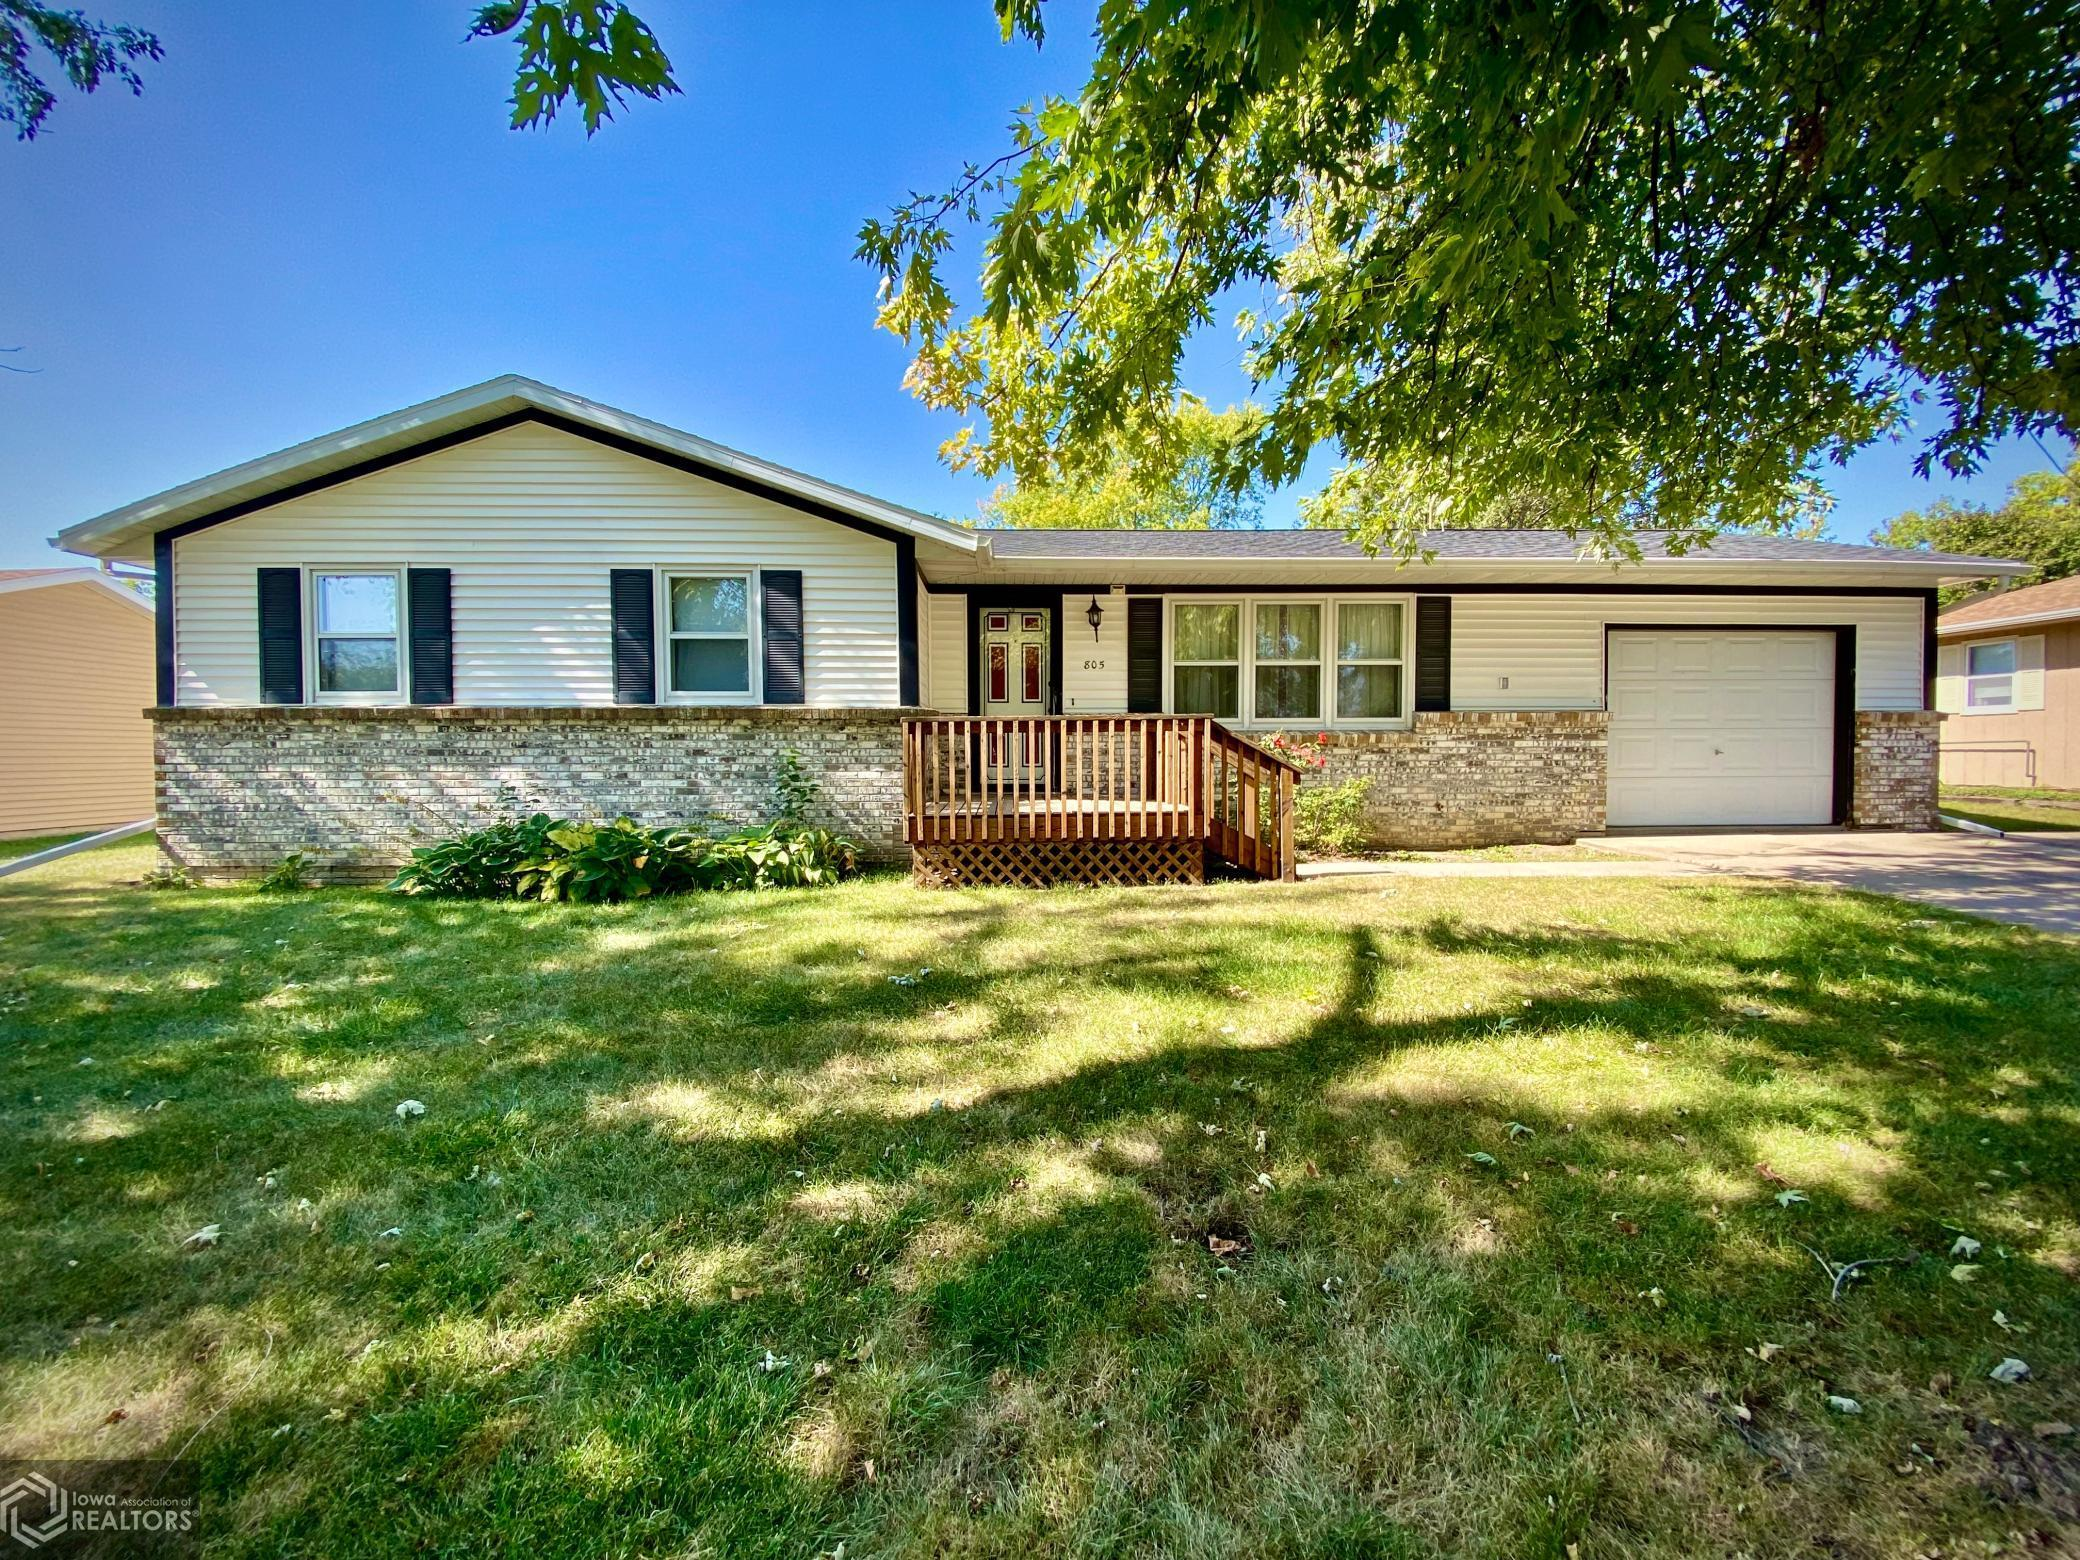 805 Penrose, Grinnell, Iowa 50112-2106, 3 Bedrooms Bedrooms, ,1 BathroomBathrooms,Single Family,For Sale,Penrose,6106419